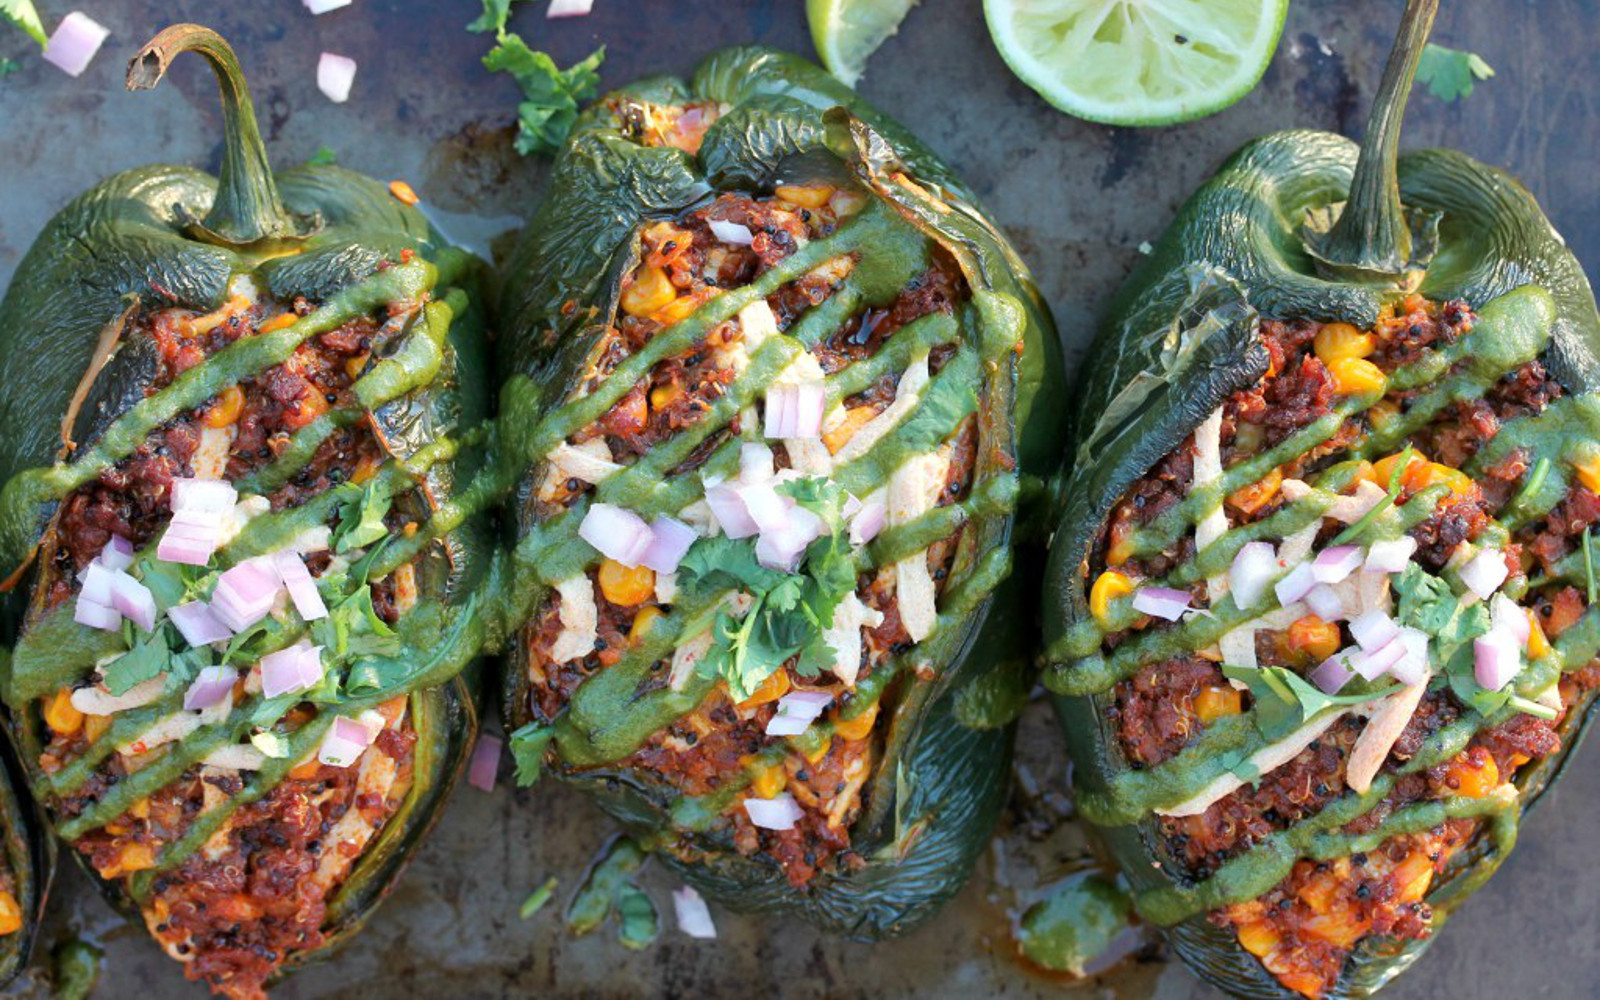 Stuffed Pasilla Peppers With Habanero Pesto